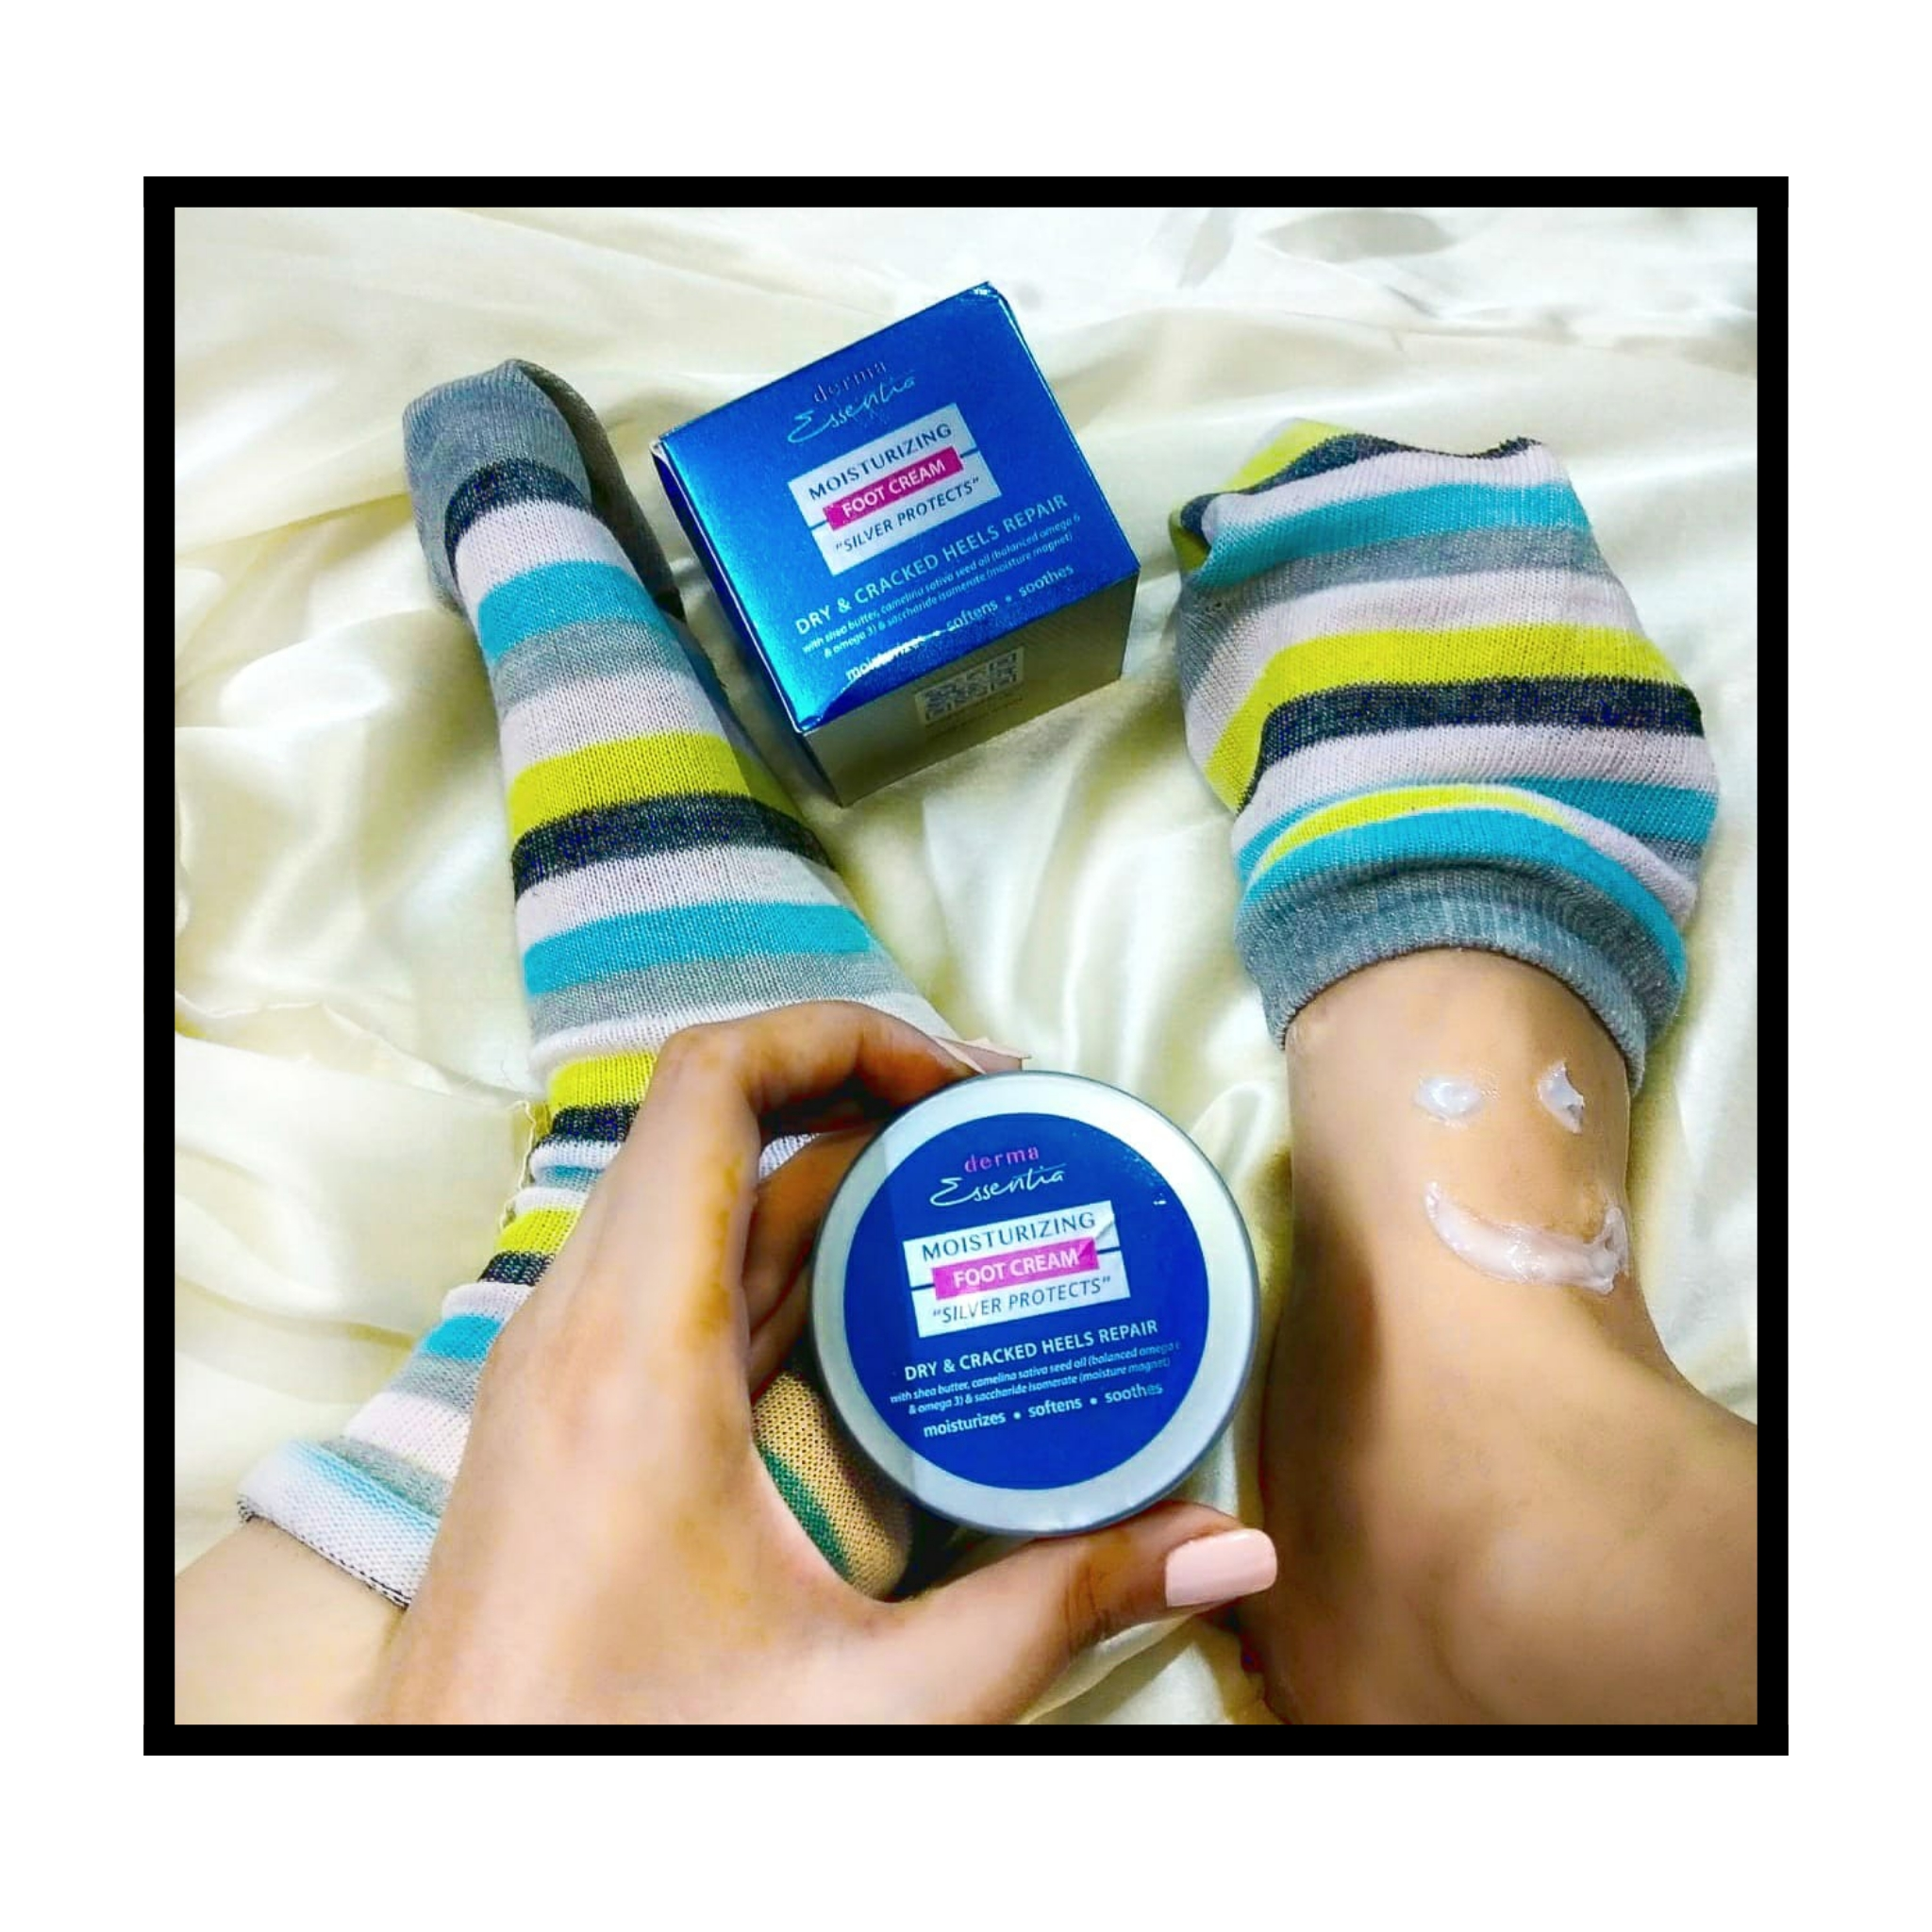 Derma Essentia Moisturizing Foot Cream with Silver Protection-Get soft and smooth heels to flaunt.-By sanchari_de-2